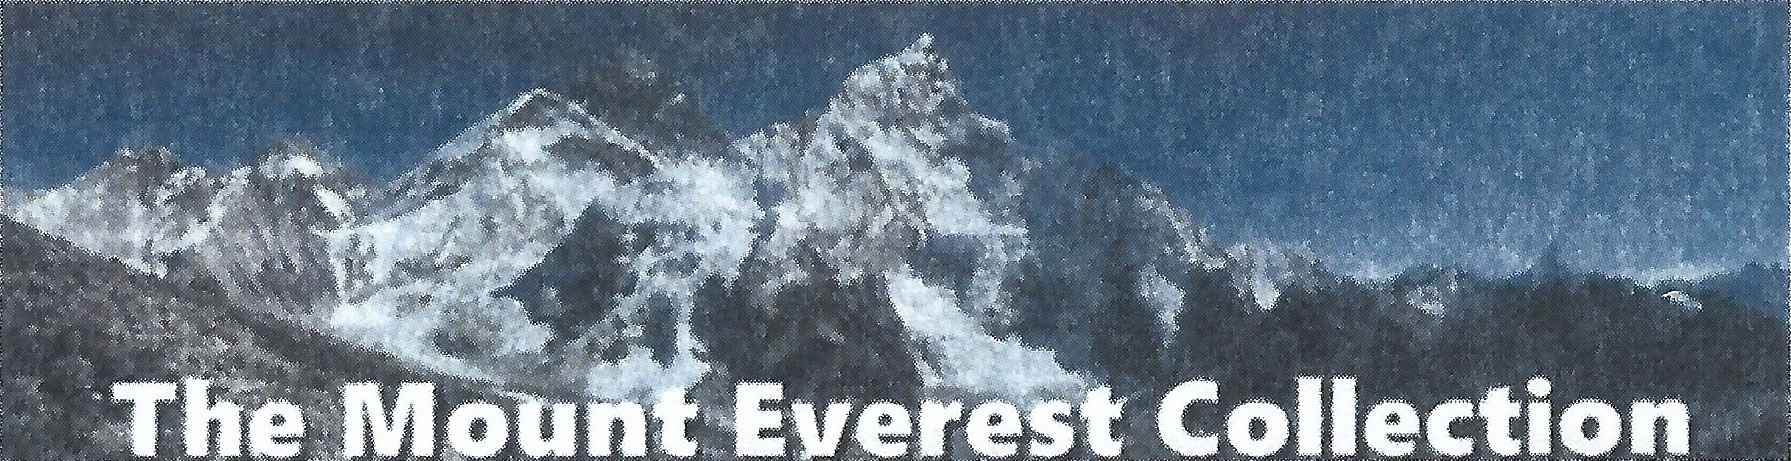 The_Mount_Everest_Cllection